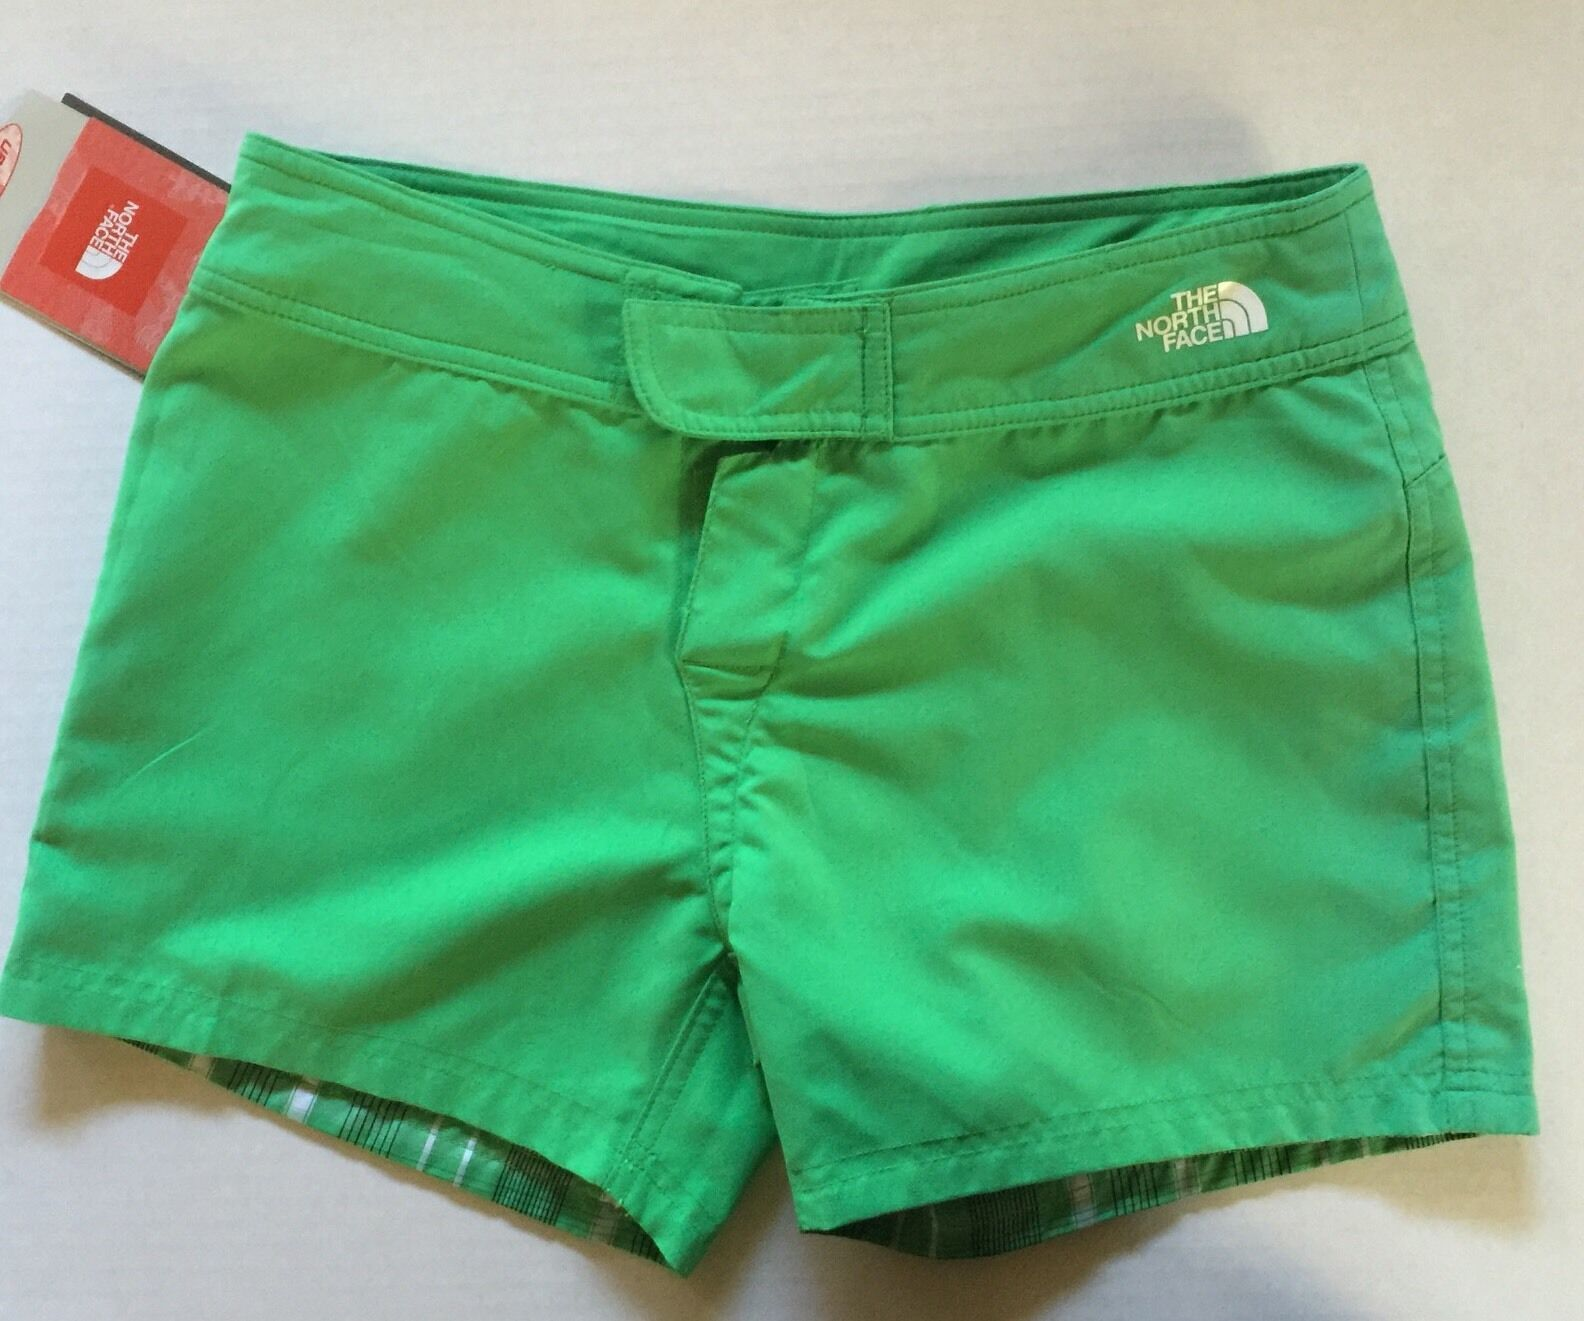 THE NORTH FACE WOMEN'S REVERSABLE SHORT NEW WITH TAGS  SPF 50 SZ 4